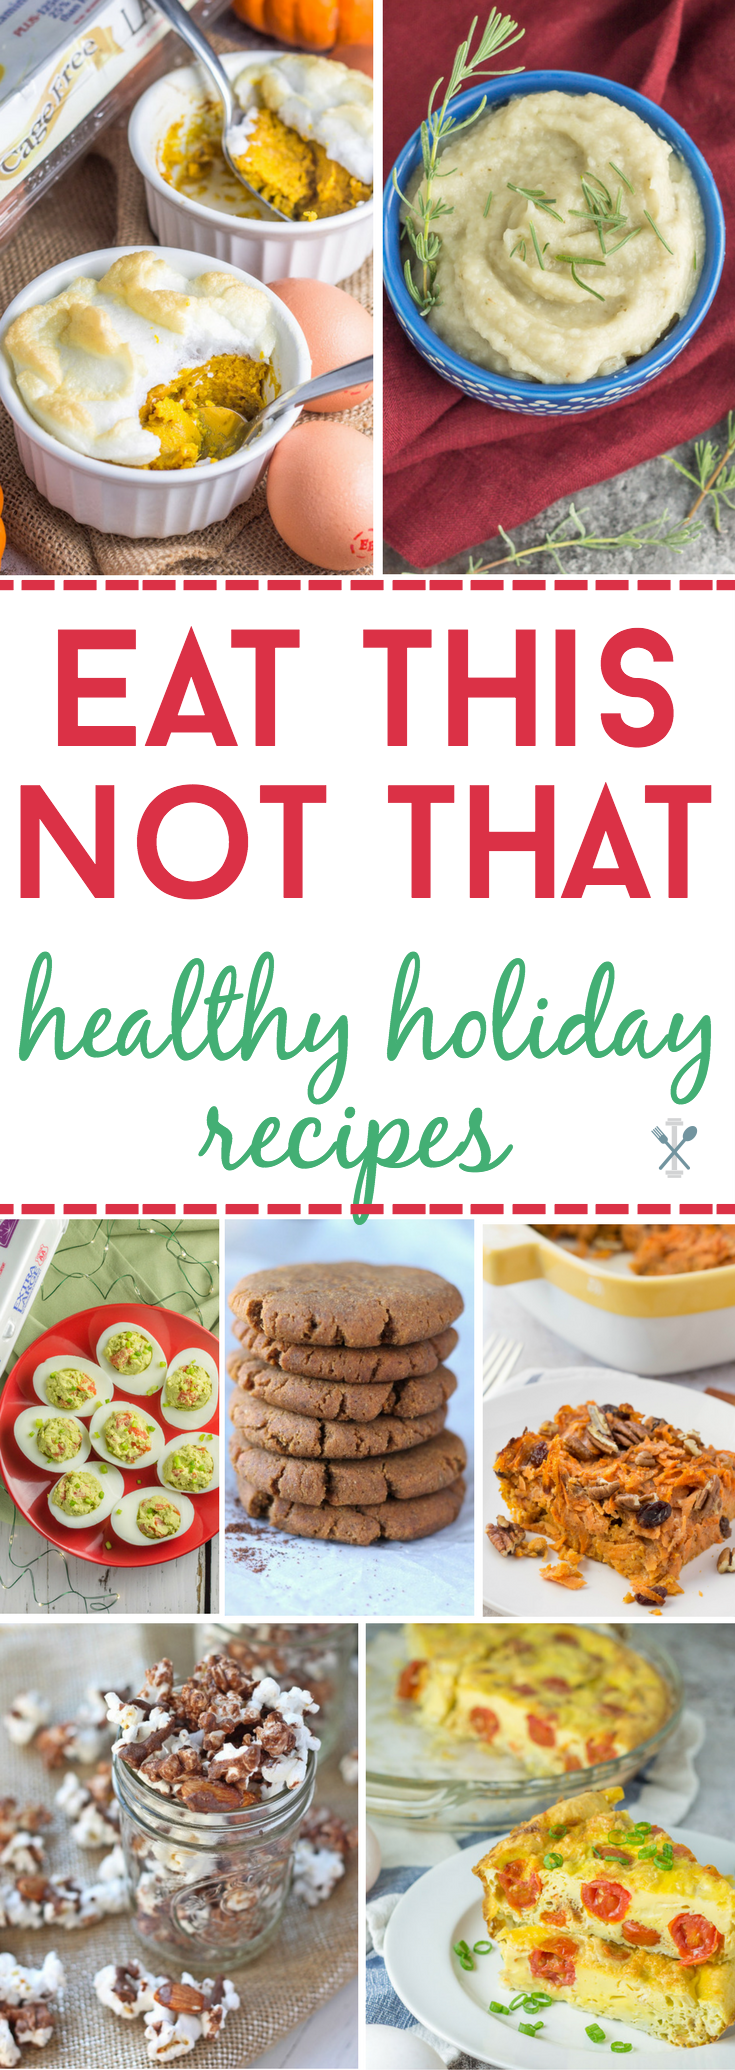 A roundup of healthy holiday recipes inspired by the classics. Lighten up your pumpkin pie, moose munch, and breakfast casseroles!  Dairy free and gluten free, many made with Eggland's Best eggs! #ad